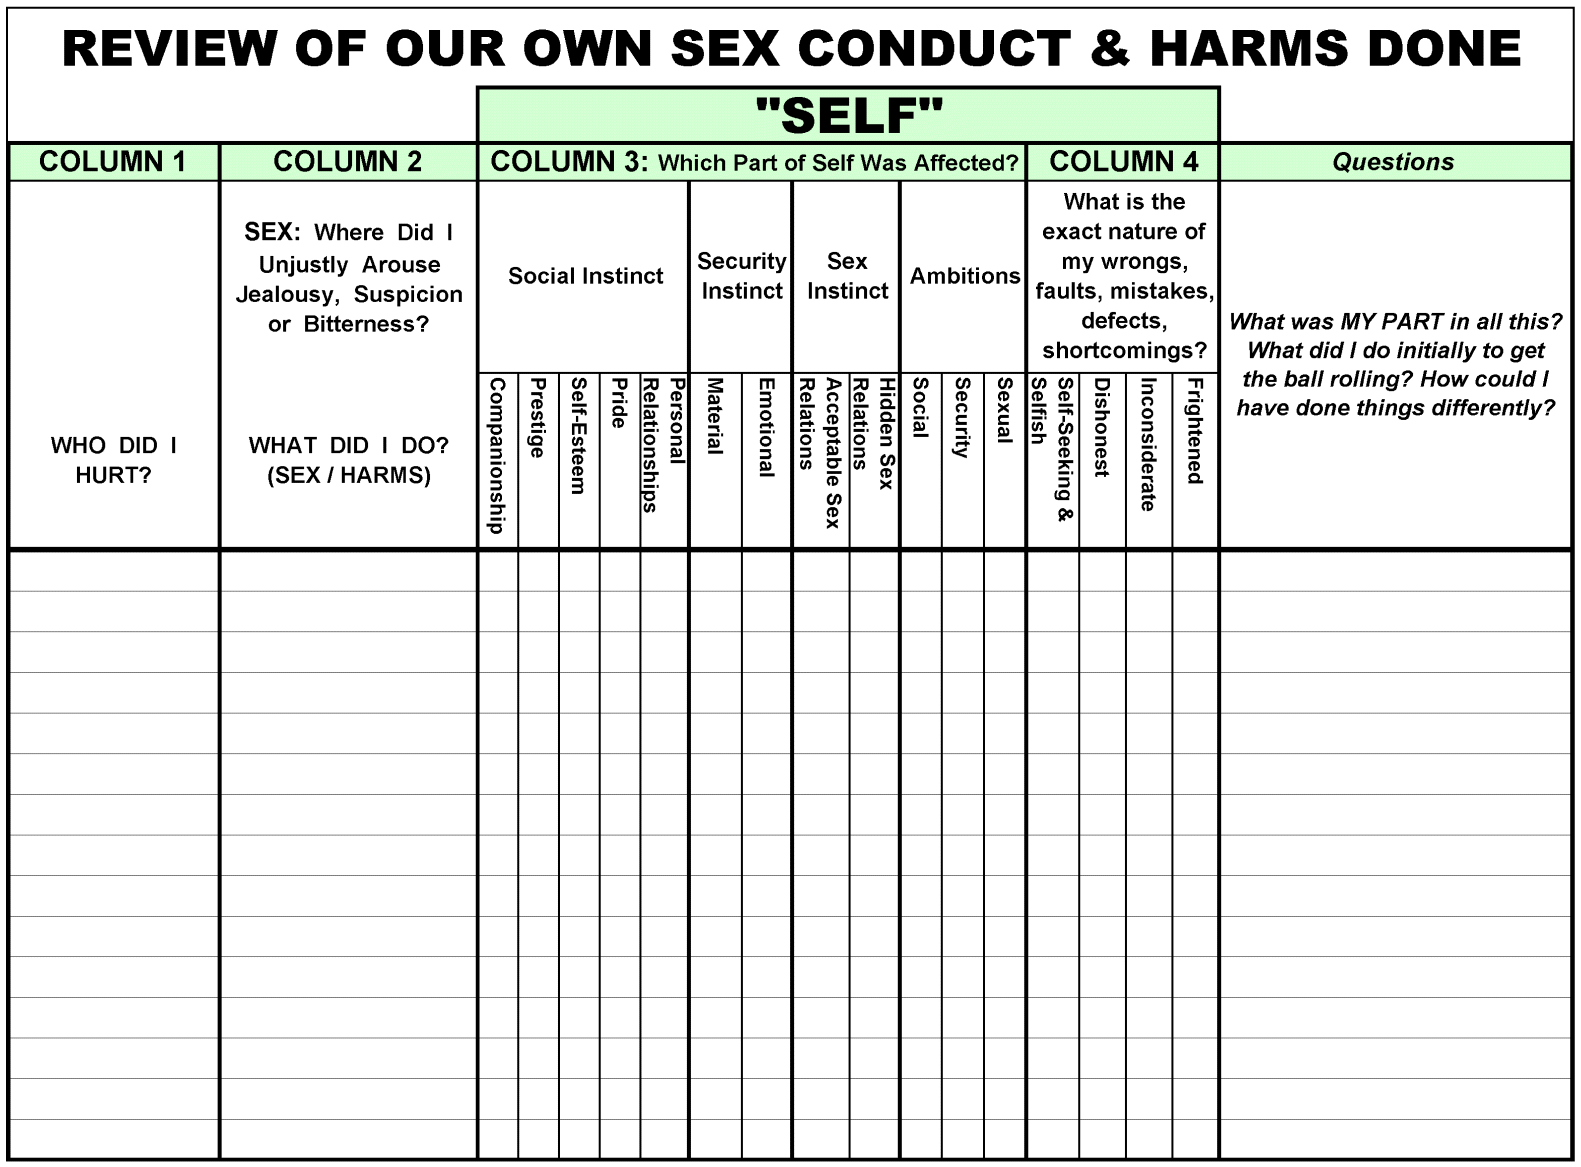 Printables Al-anon 4th Step Worksheet printables al anon 12 steps worksheets safarmediapps step 4 worksheet hypeelite step4 sexconduct harmsdone welcome